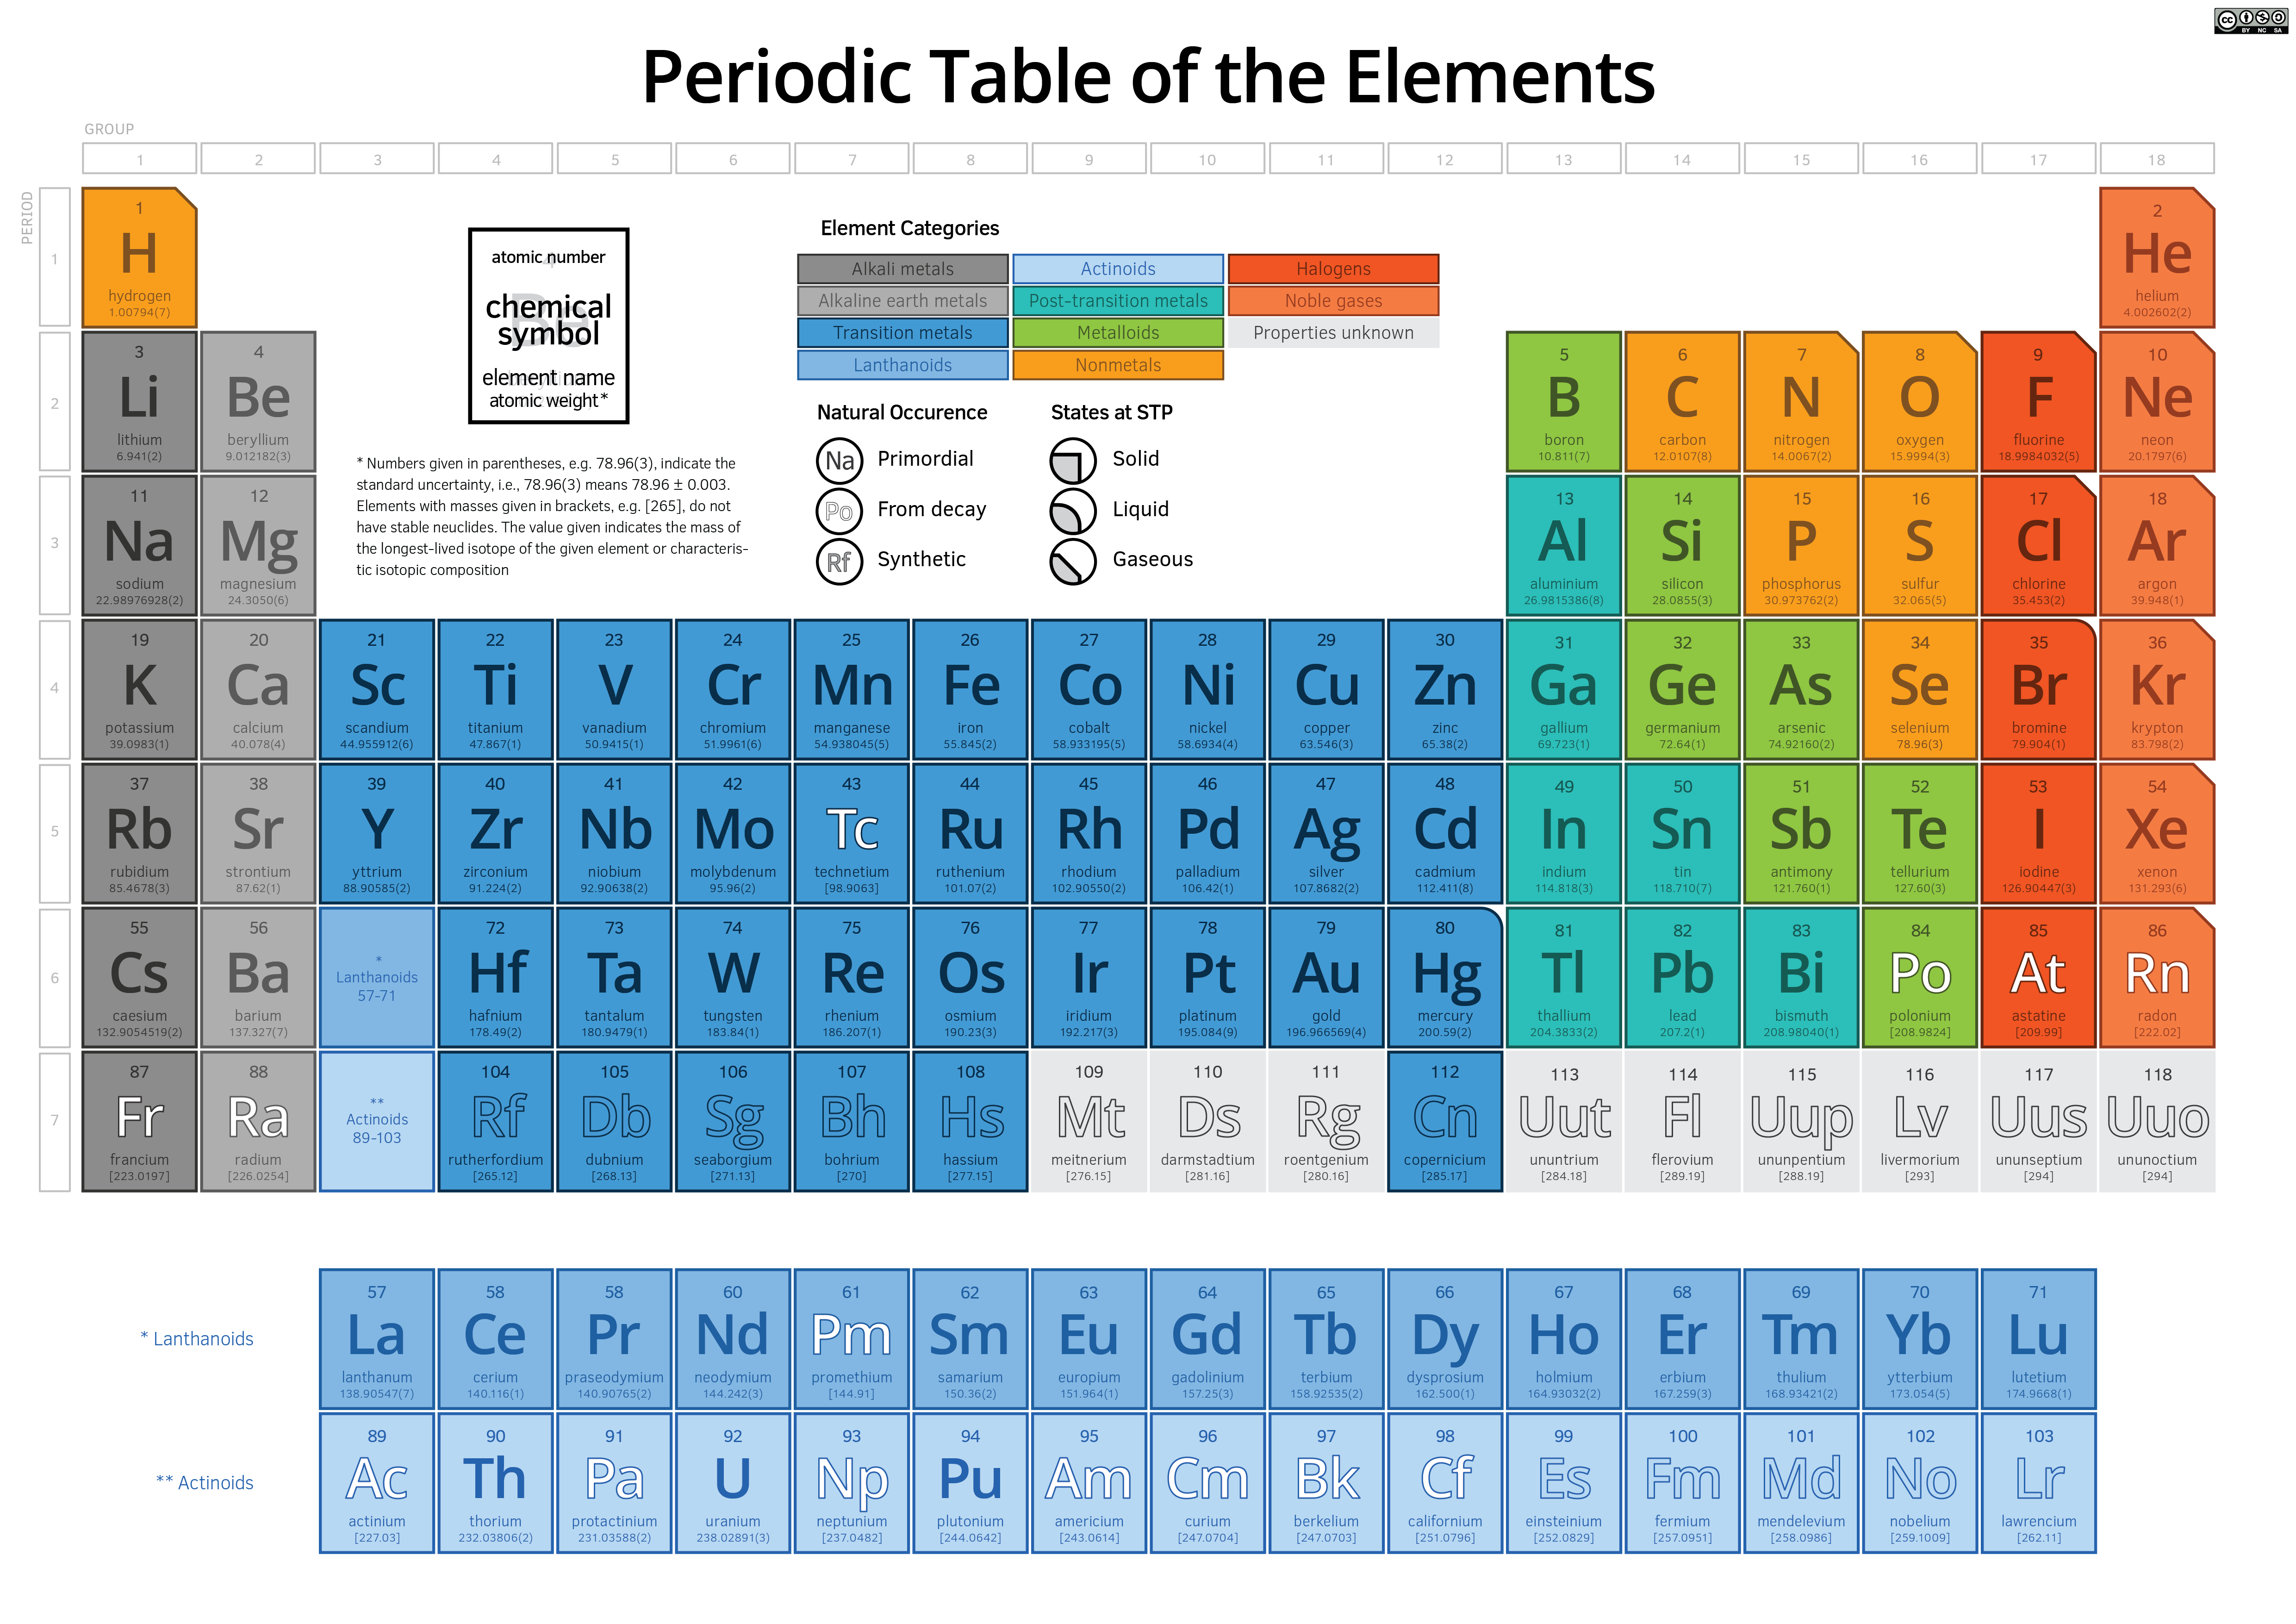 Periodic table of the elements by fiveless on deviantart periodic table of the elements by fiveless gamestrikefo Image collections